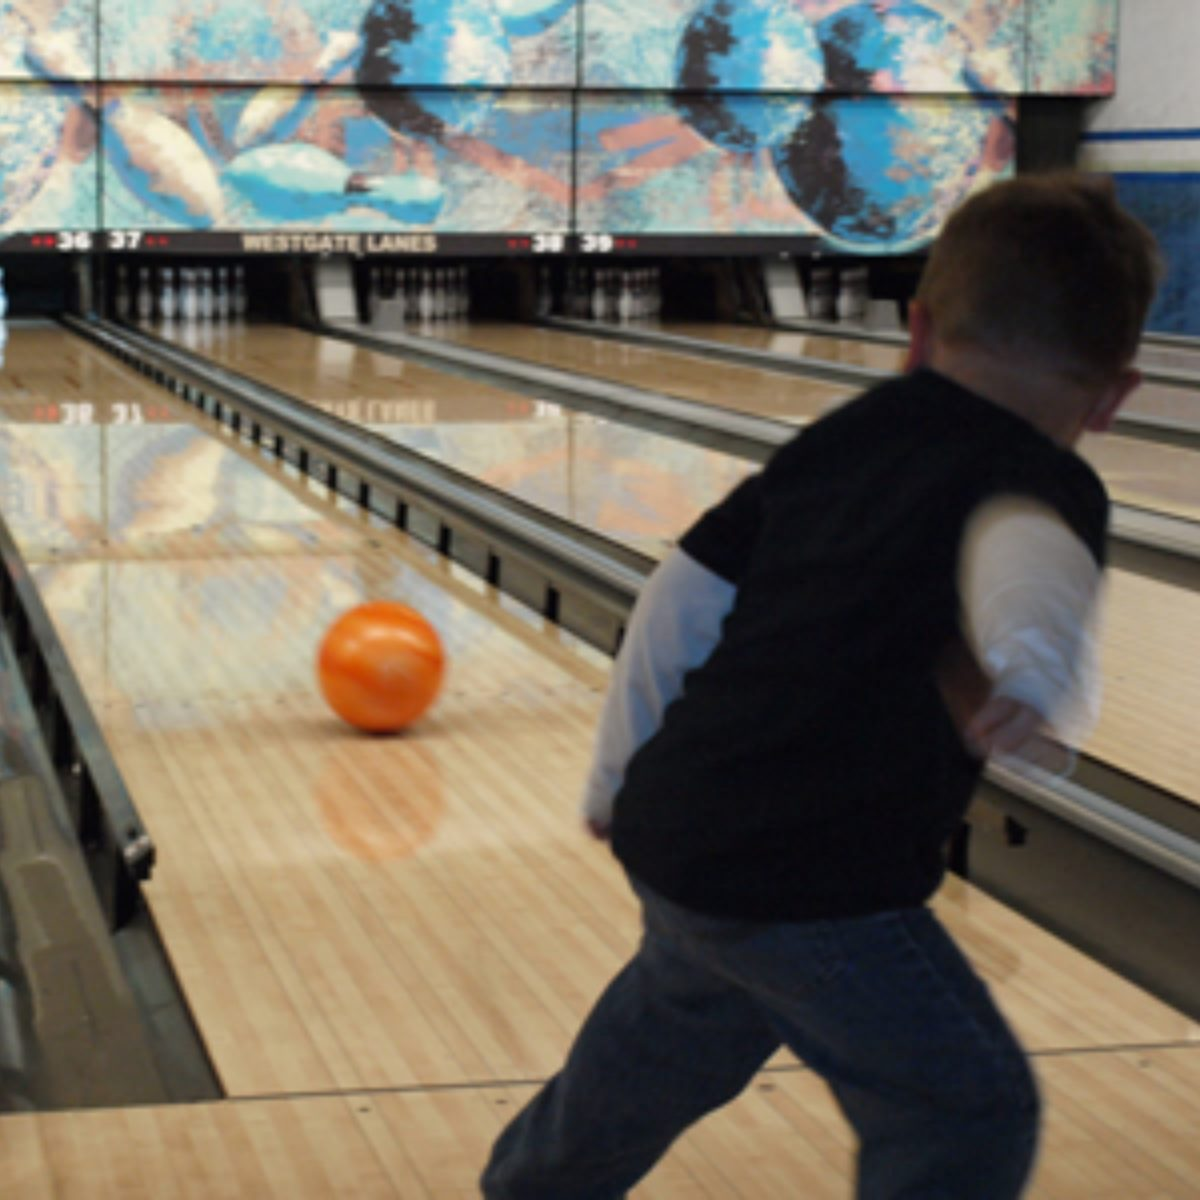 kid throwing a bowling ball down the lane